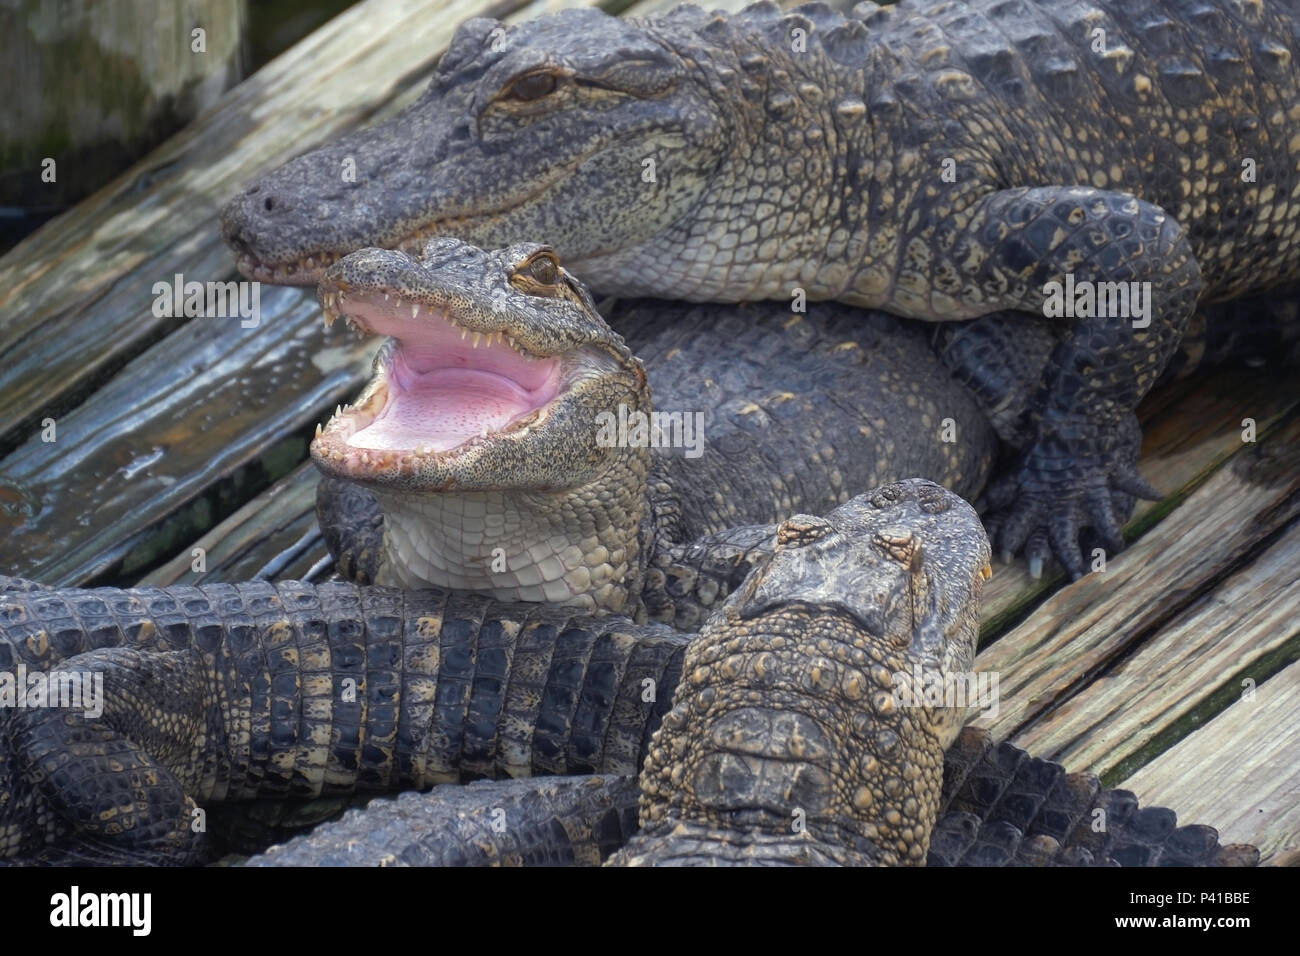 Alligator with mouth open. - Stock Image